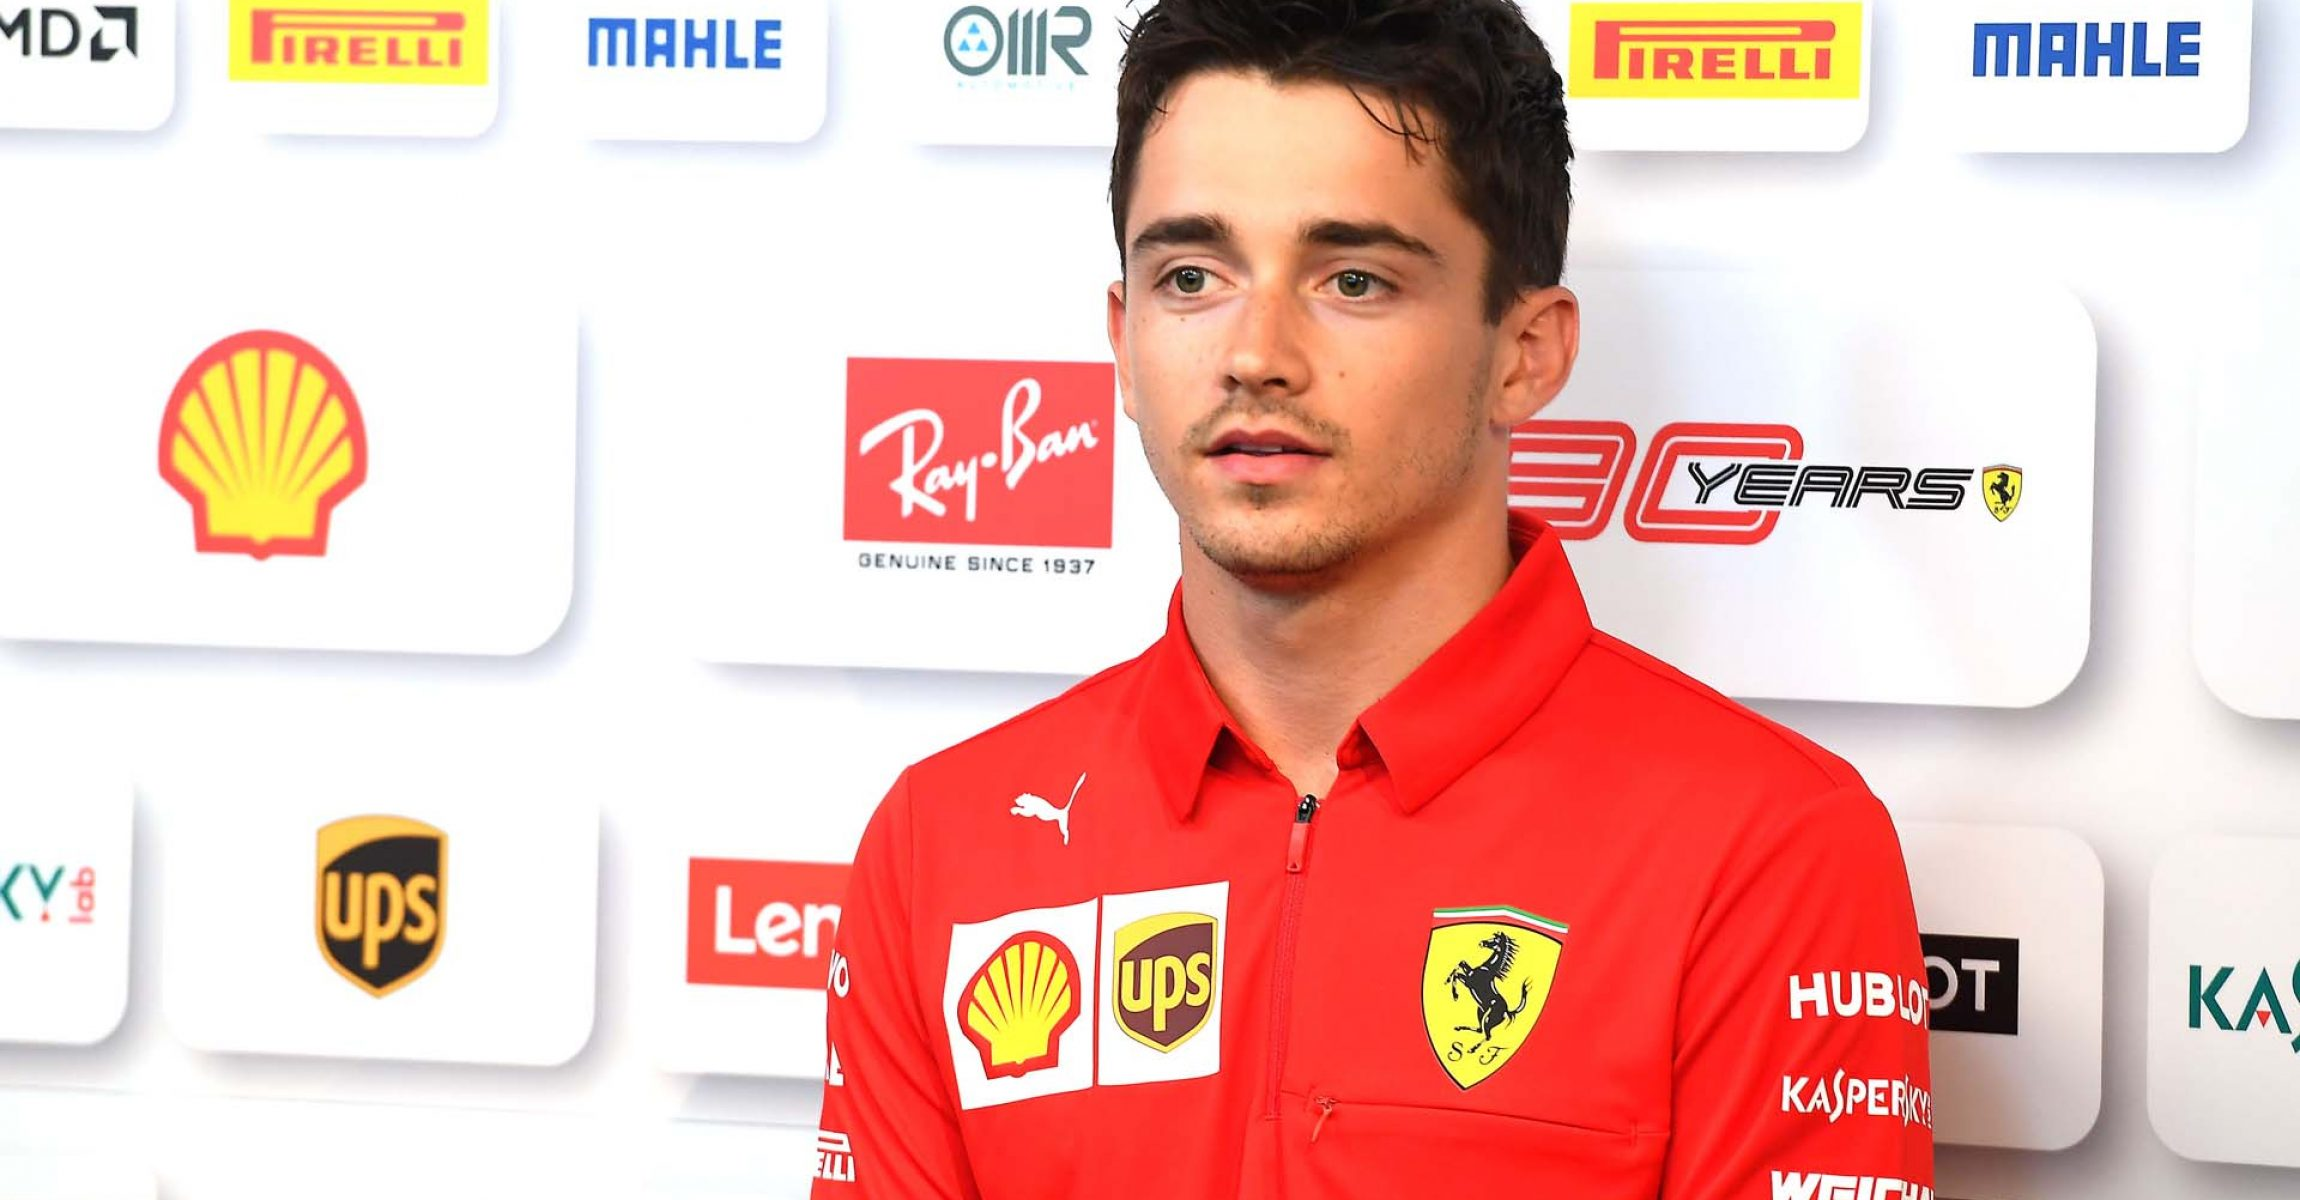 GP GRAN BRETAGNA F1/2019 - GIOVEDÌ 11/07/2019 credit: @Scuderia Ferrari Press Office Charles Leclerc